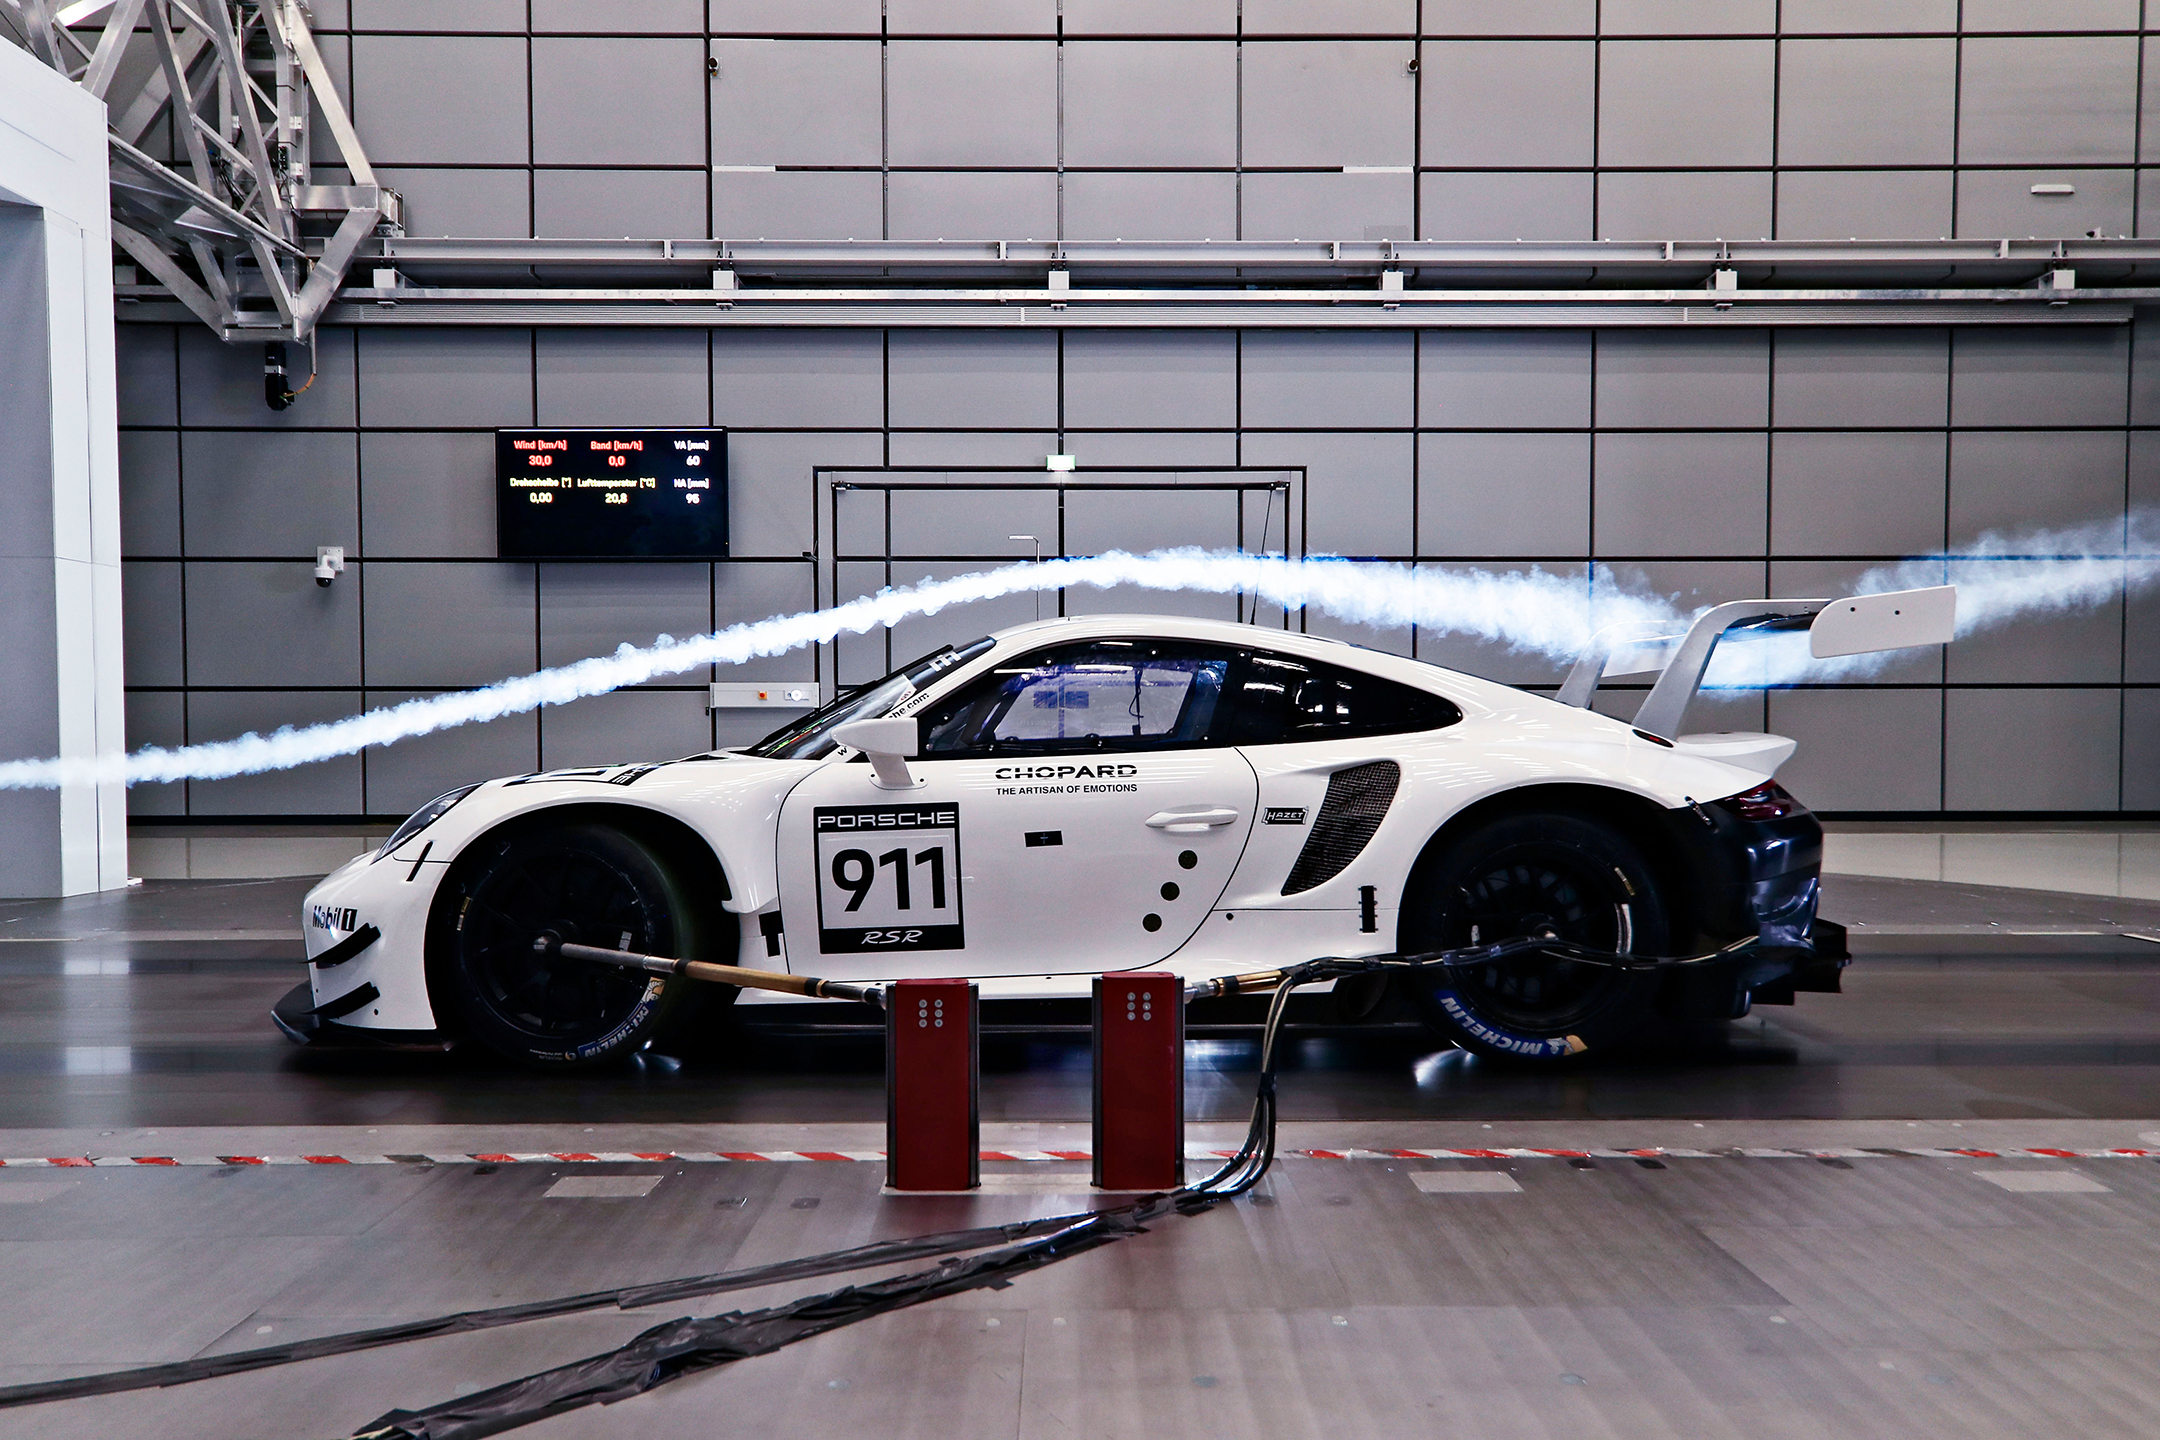 Porsche 911 RSR-19 - 2019 - side-face - work in progress - aero testing - light - wind tunnel / soufflerie